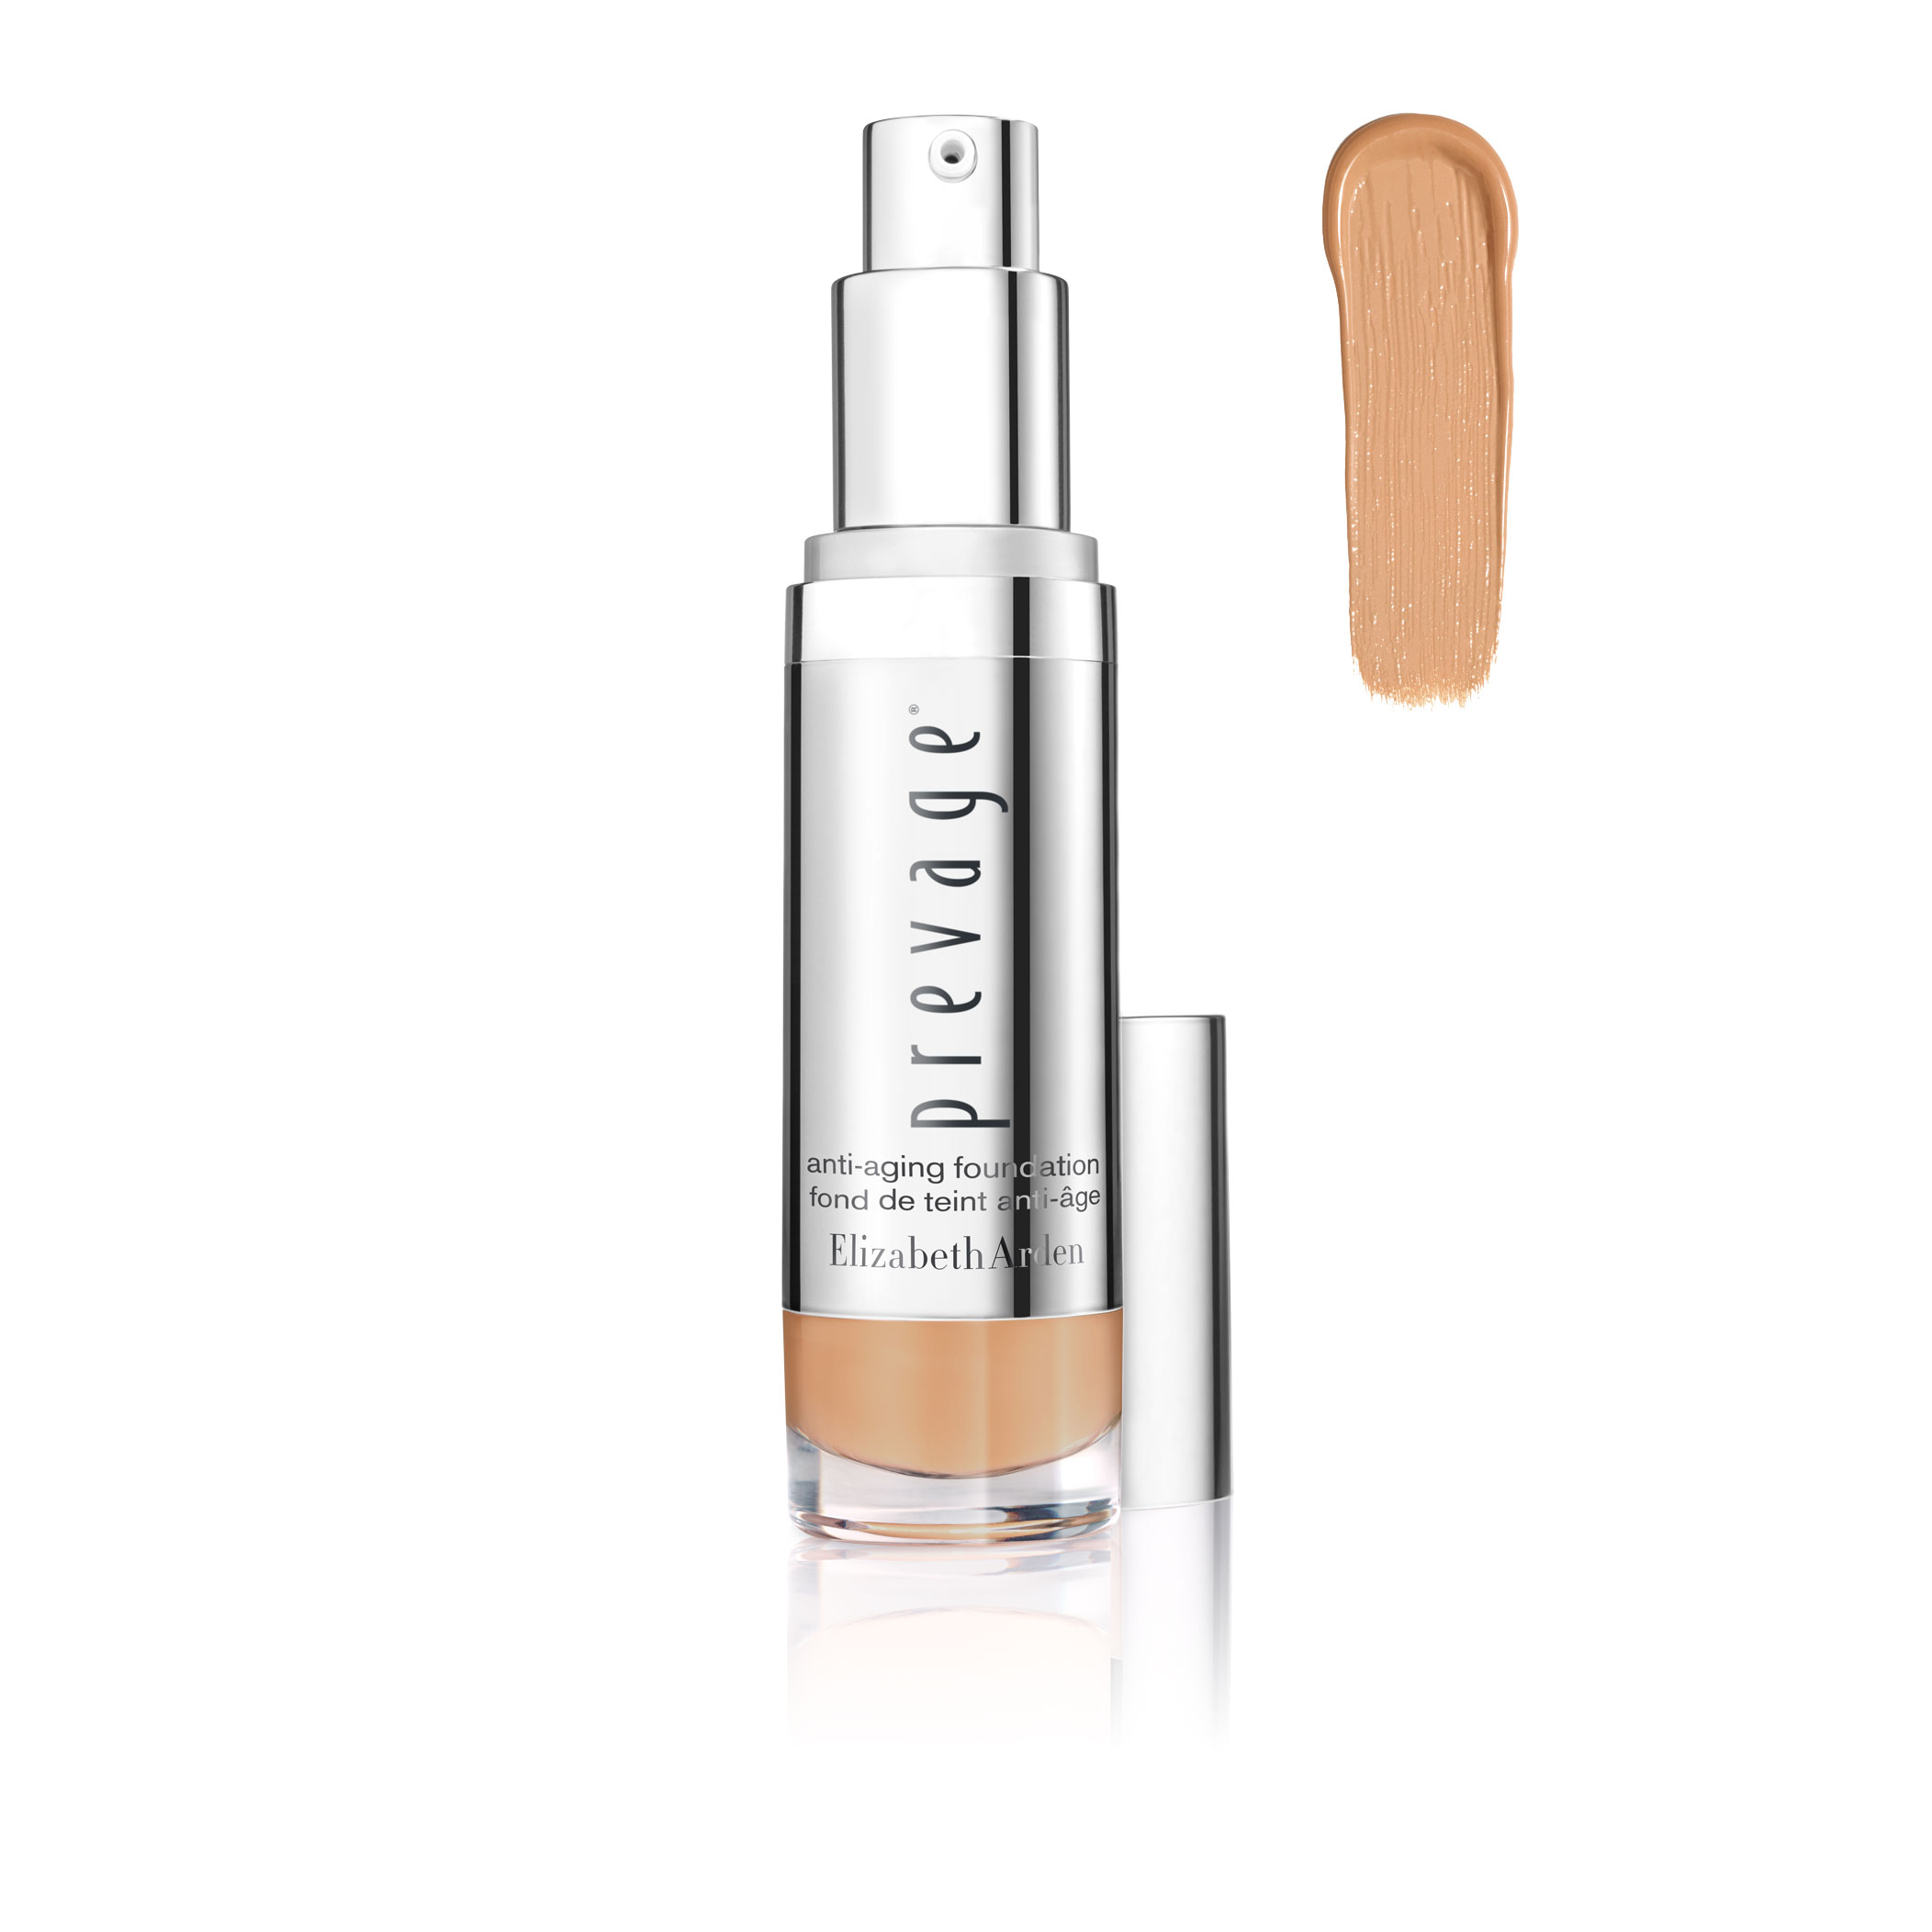 Best foundation for aging skin reviews